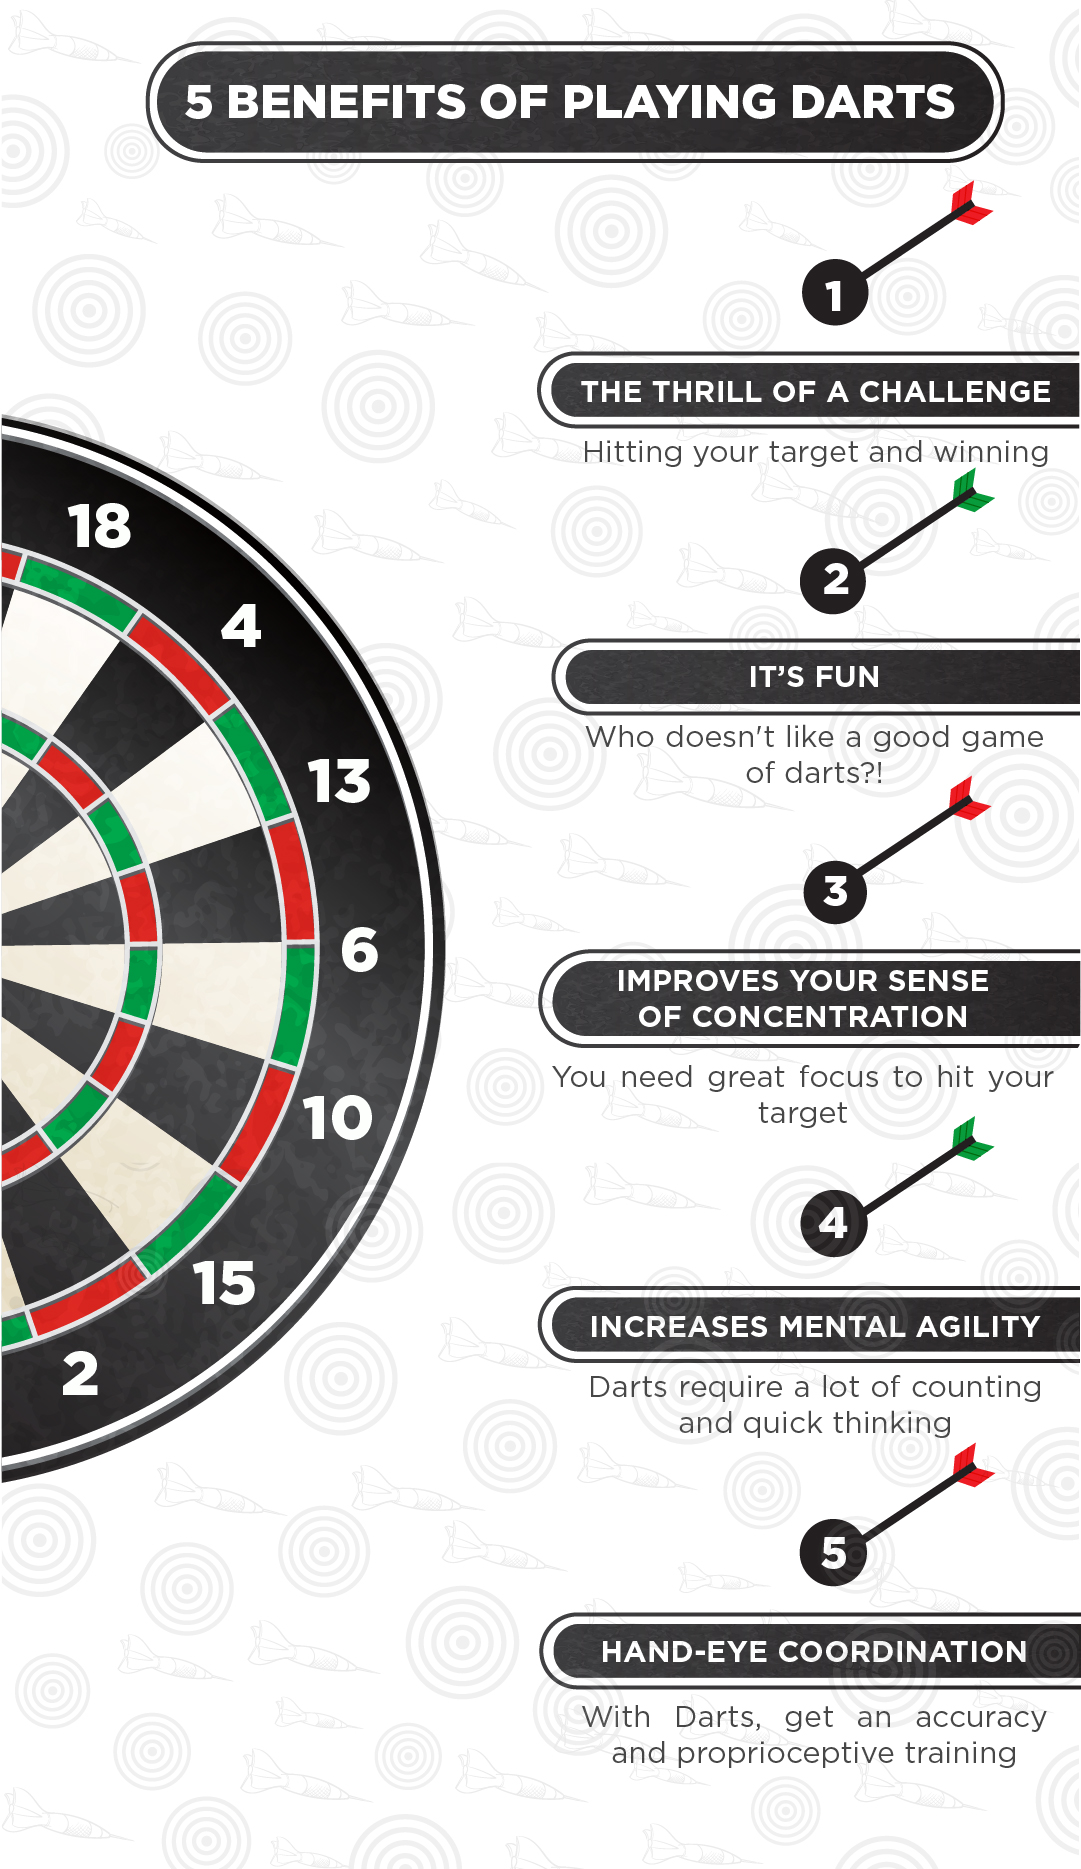 5 Benefits of Playing Darts